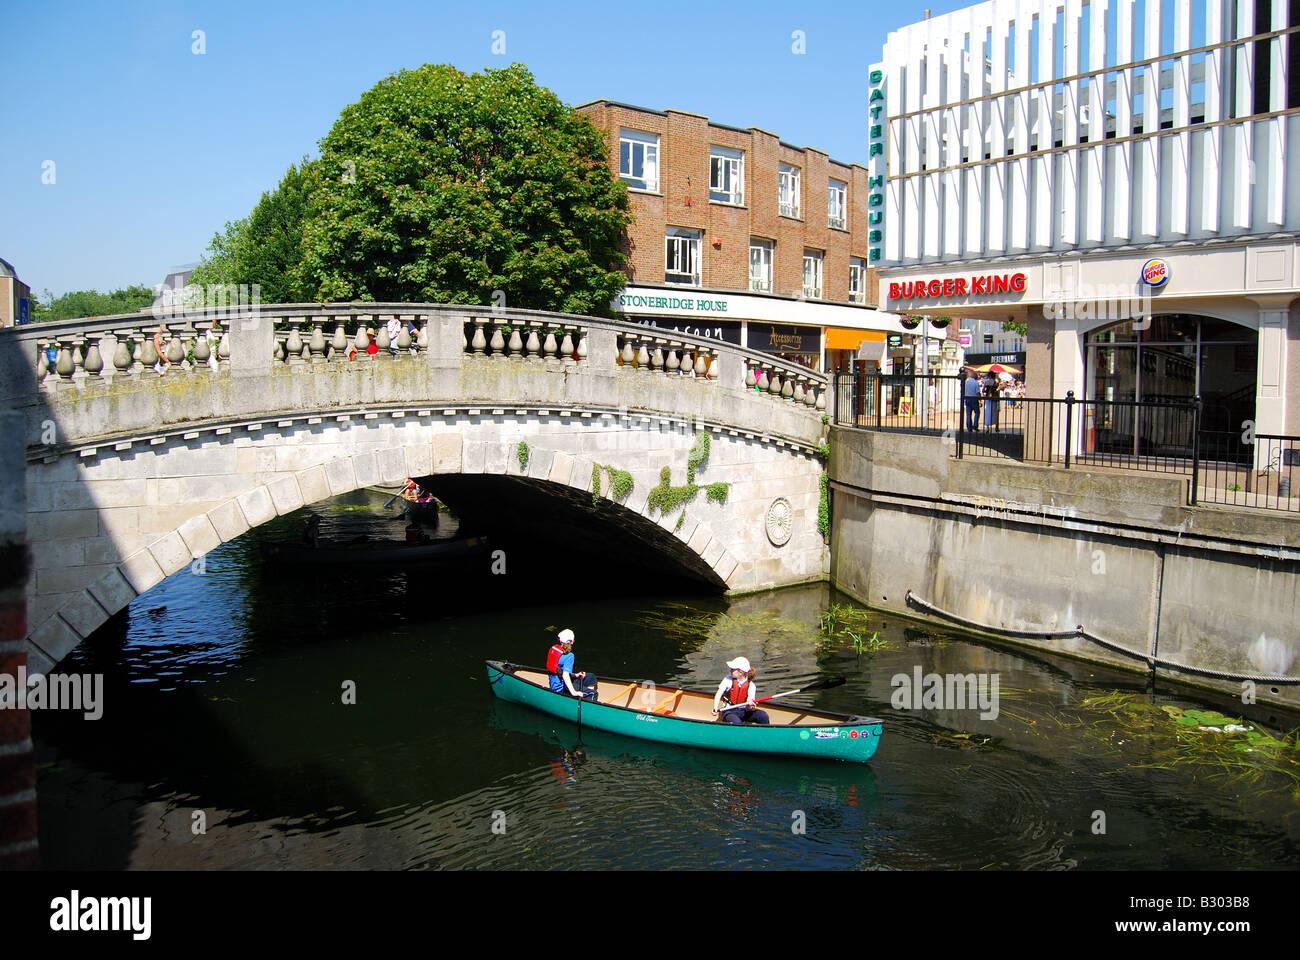 Stone Bridge over River Cam High Street Chelmsford Essex England